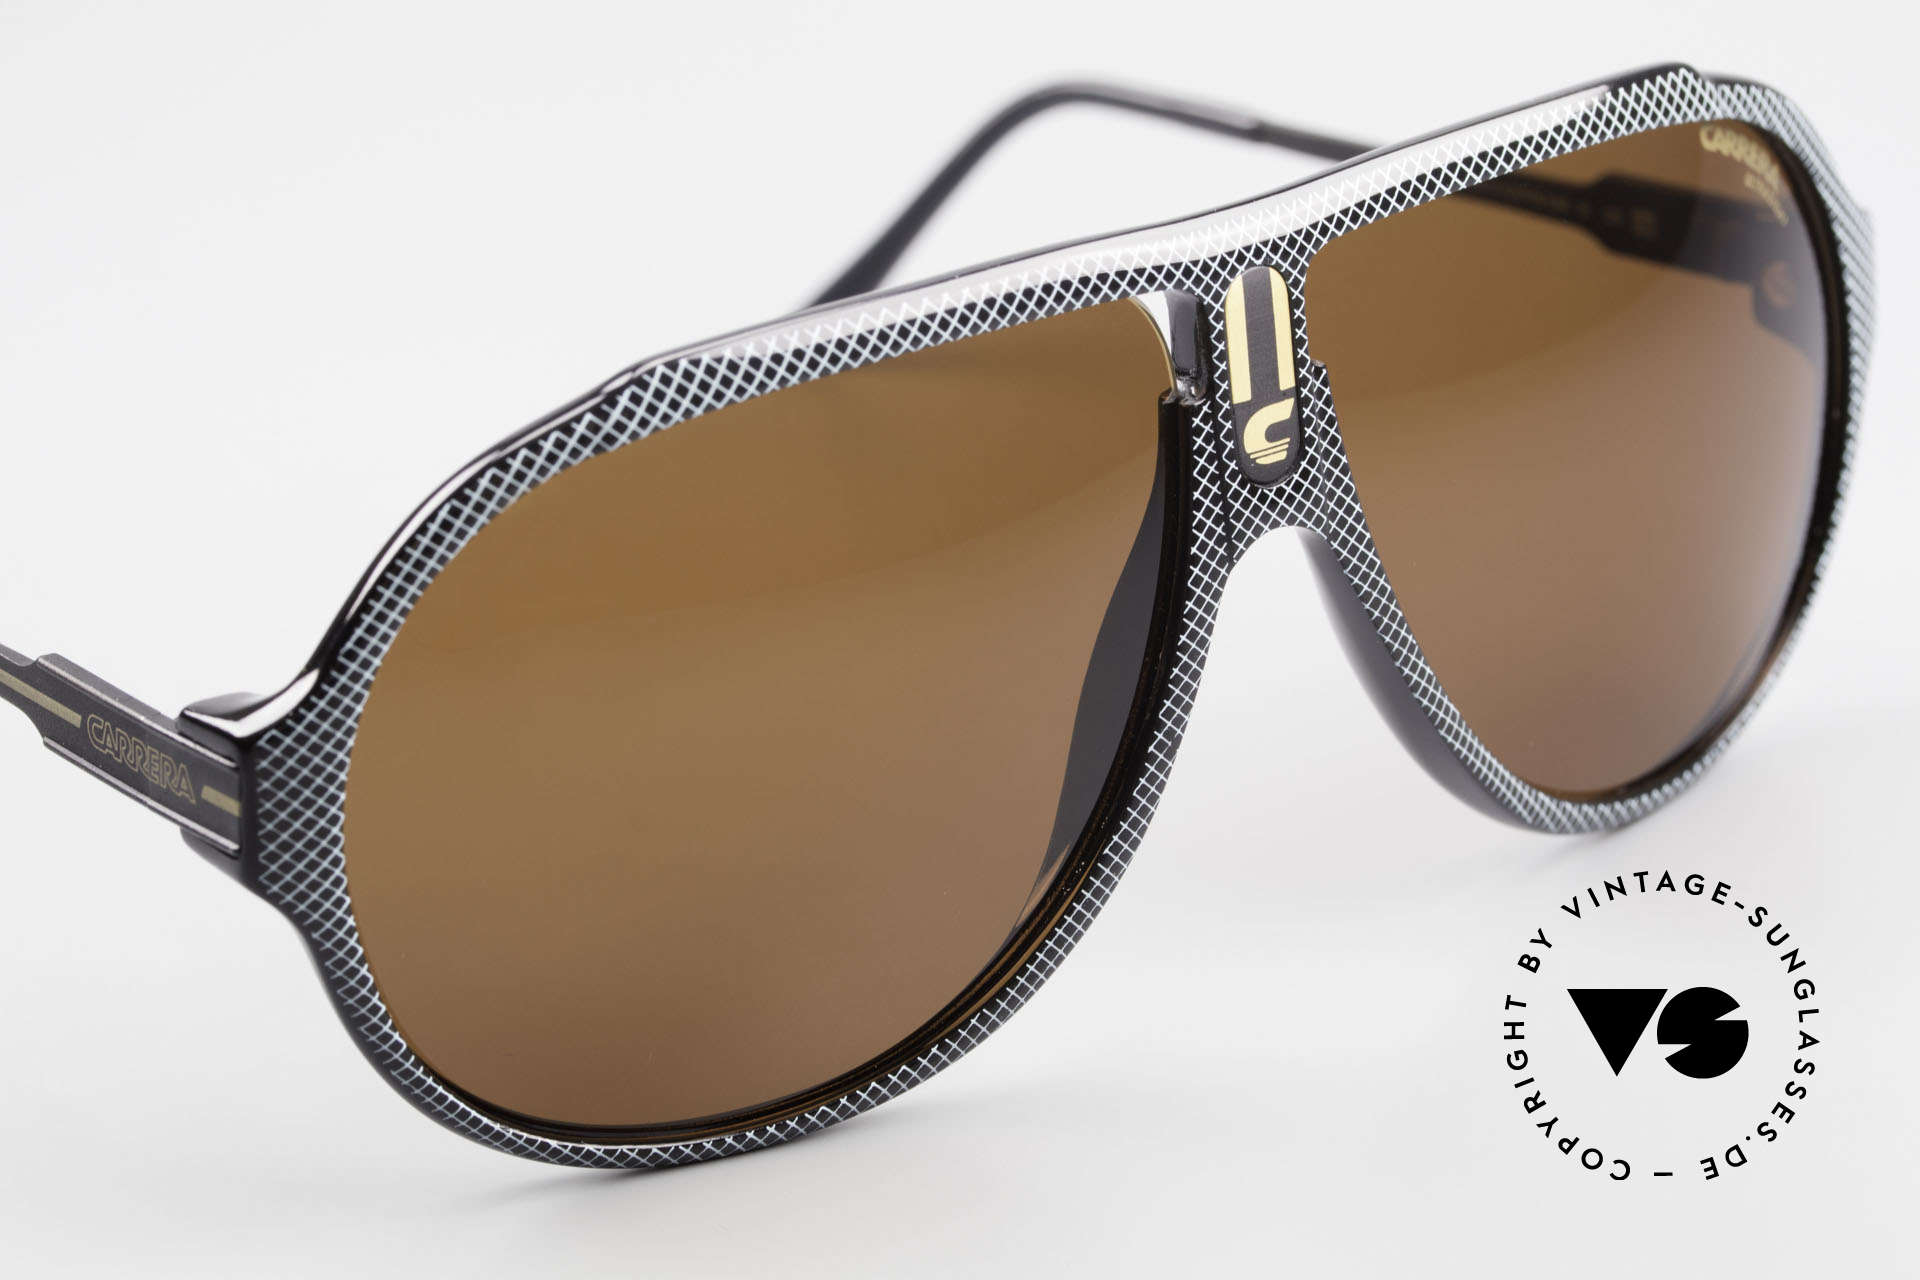 Carrera 5565 Old Vintage Sunglasses 1980's, NO RETRO sunglasses, but a 35 years old vintage original, Made for Men and Women